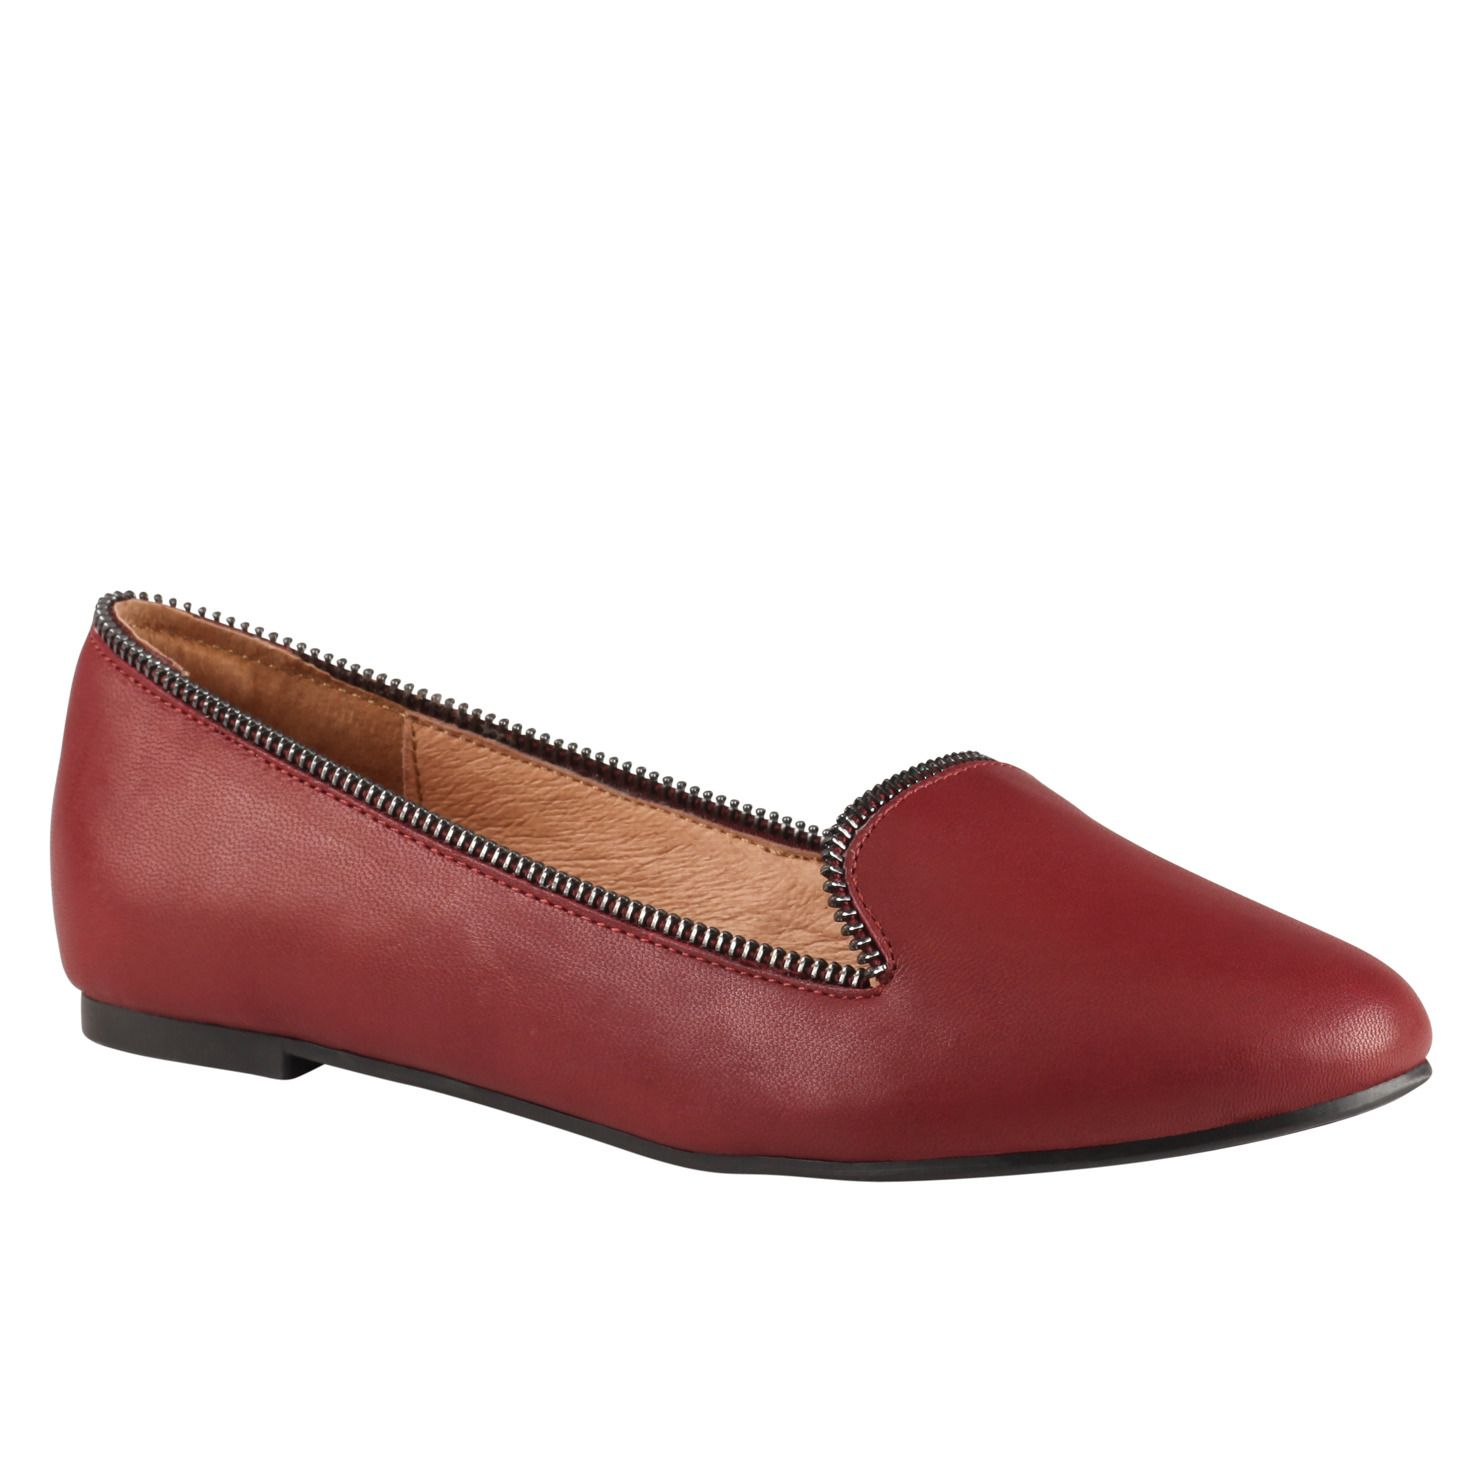 Leonsa Flat Slipper Loafer Shoes